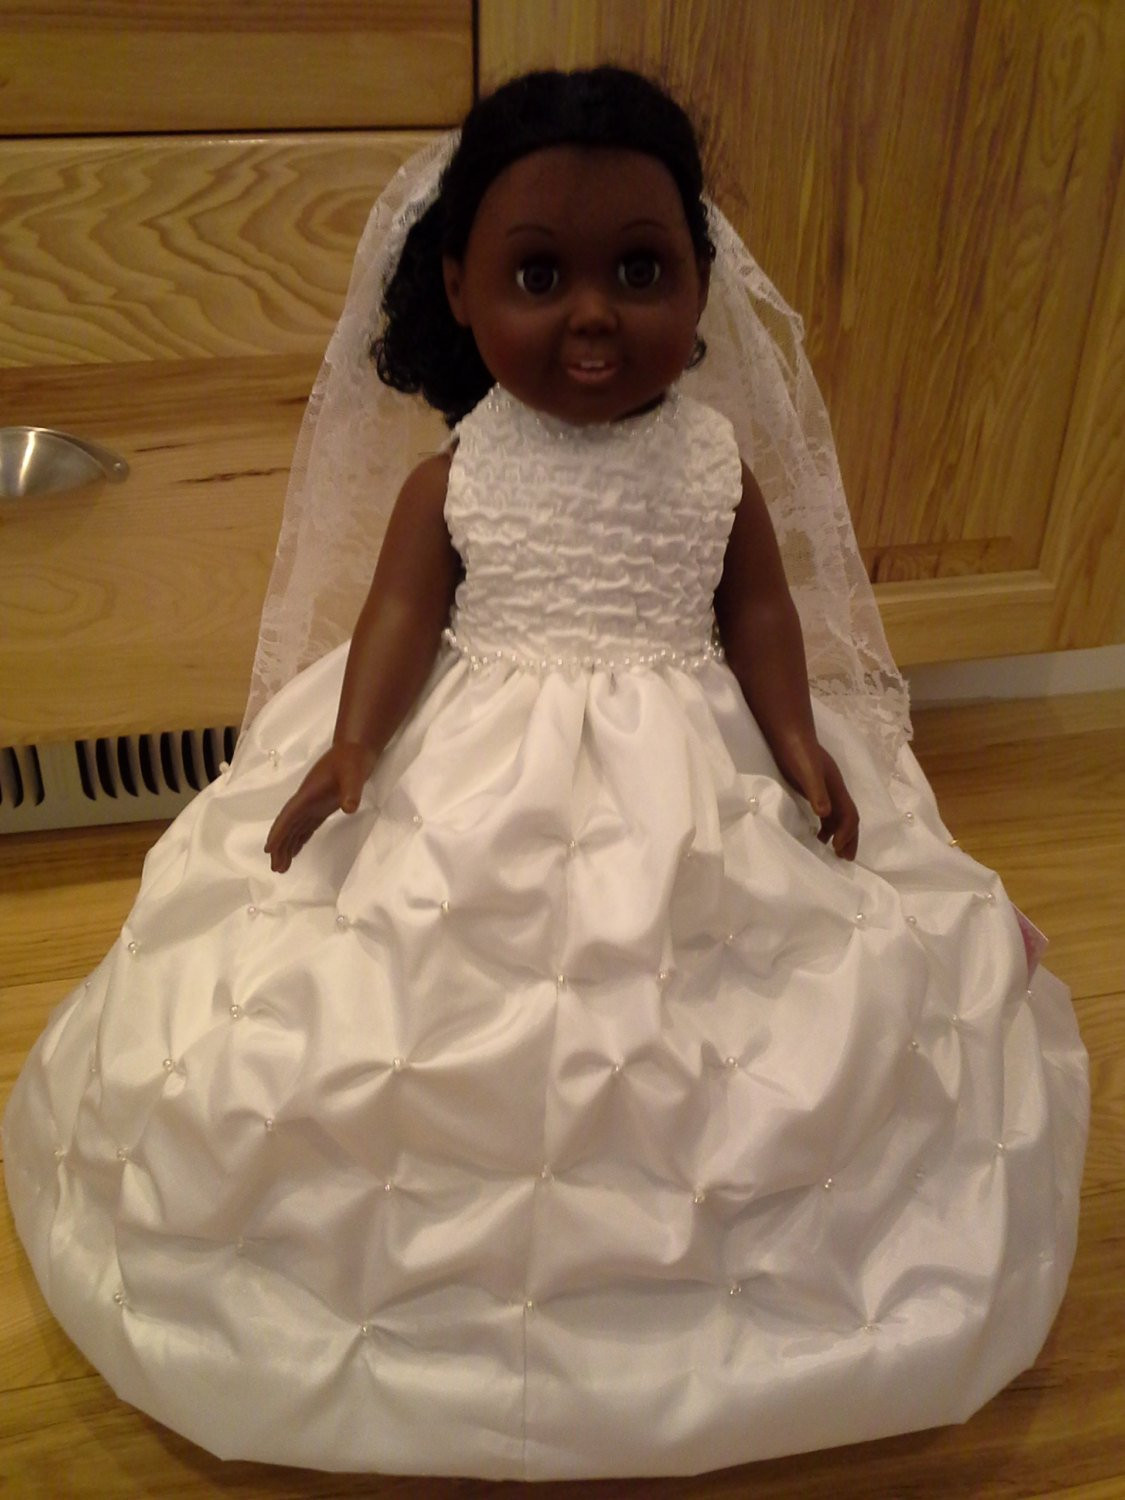 Elegant Doll Wedding Gown and Veil American Girl Doll American Girl Doll Wedding Dress Of Elegant Handmade 18 Doll Wedding Dress Five Piece by Creationsbynoveda American Girl Doll Wedding Dress